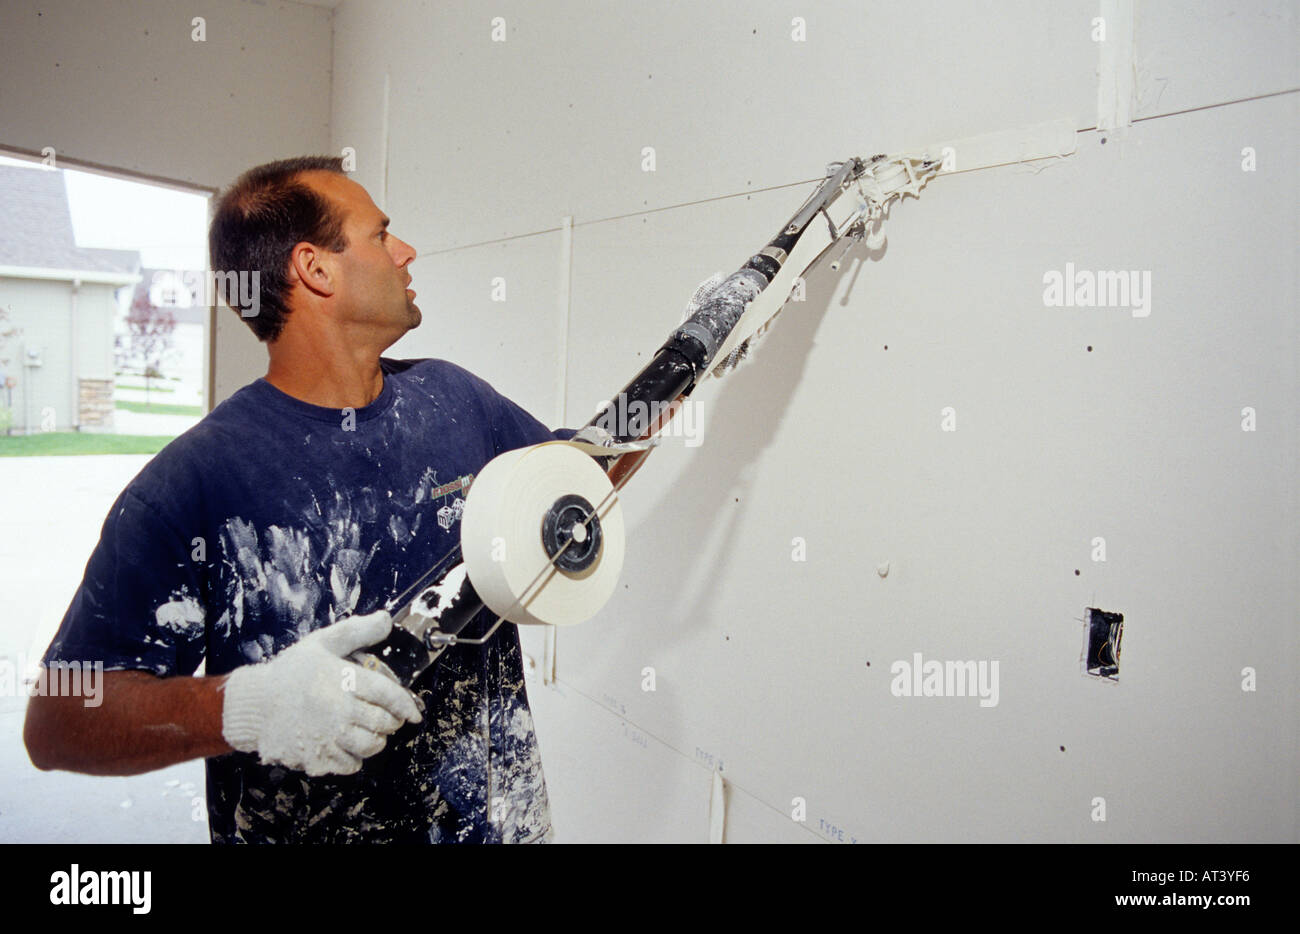 A Dry Wall Worker Uses A Drywall Tape Applicator Called A